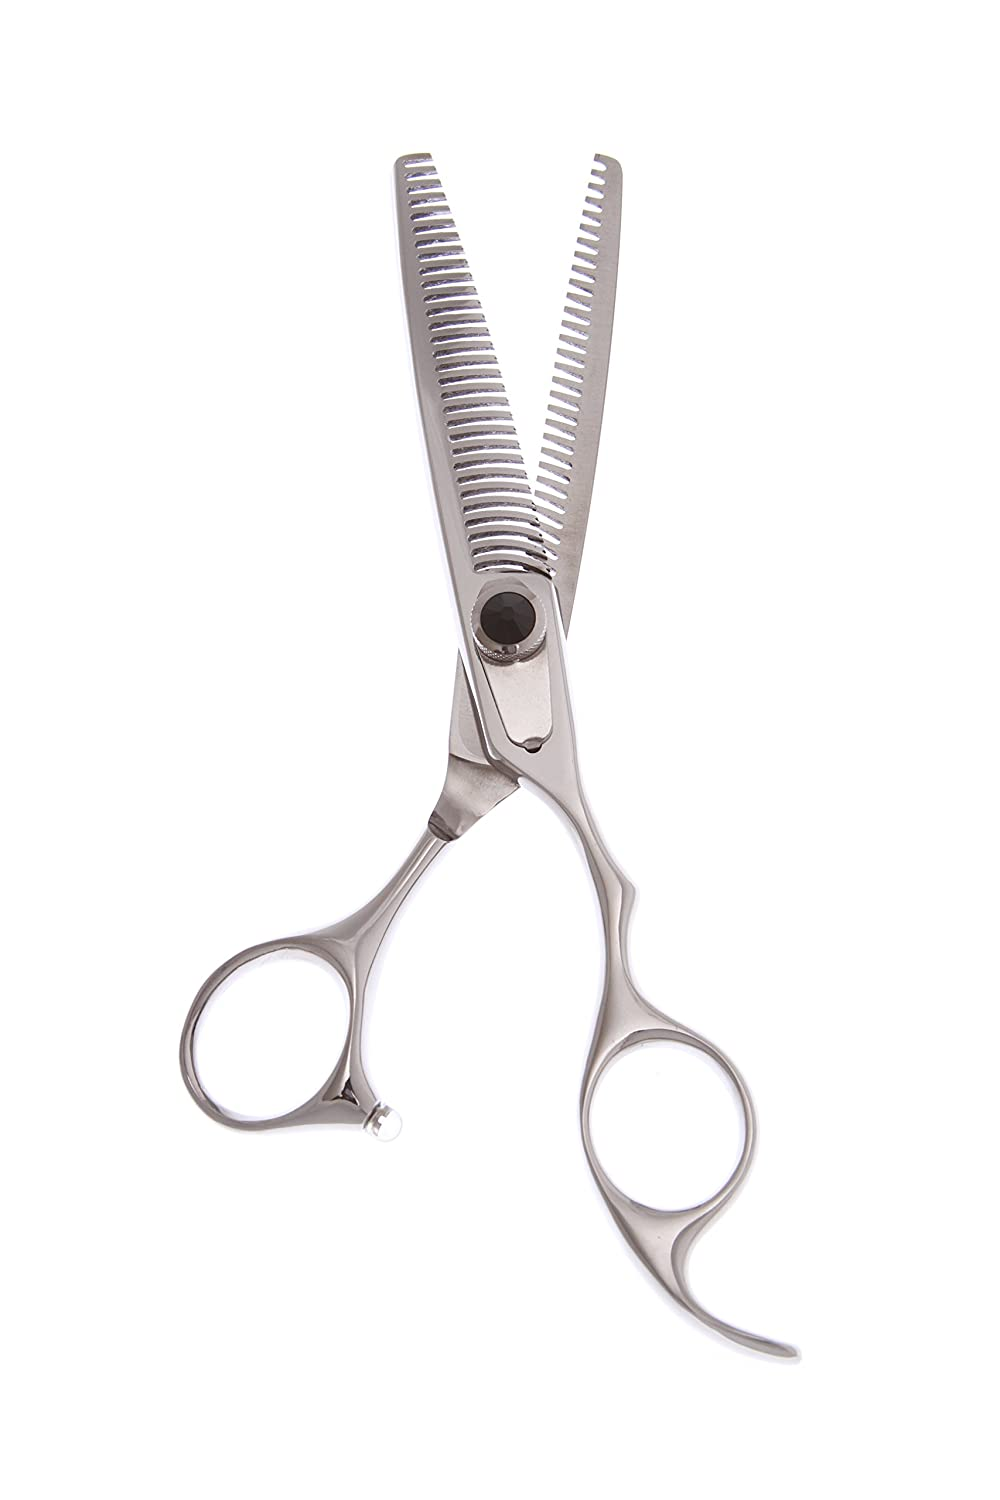 ShearsDirect YA65-40DT Stainless Steel No Line Blending Shear with Offset Ergonomic Handle, 6.5 6.5 Bucci Global Products INC